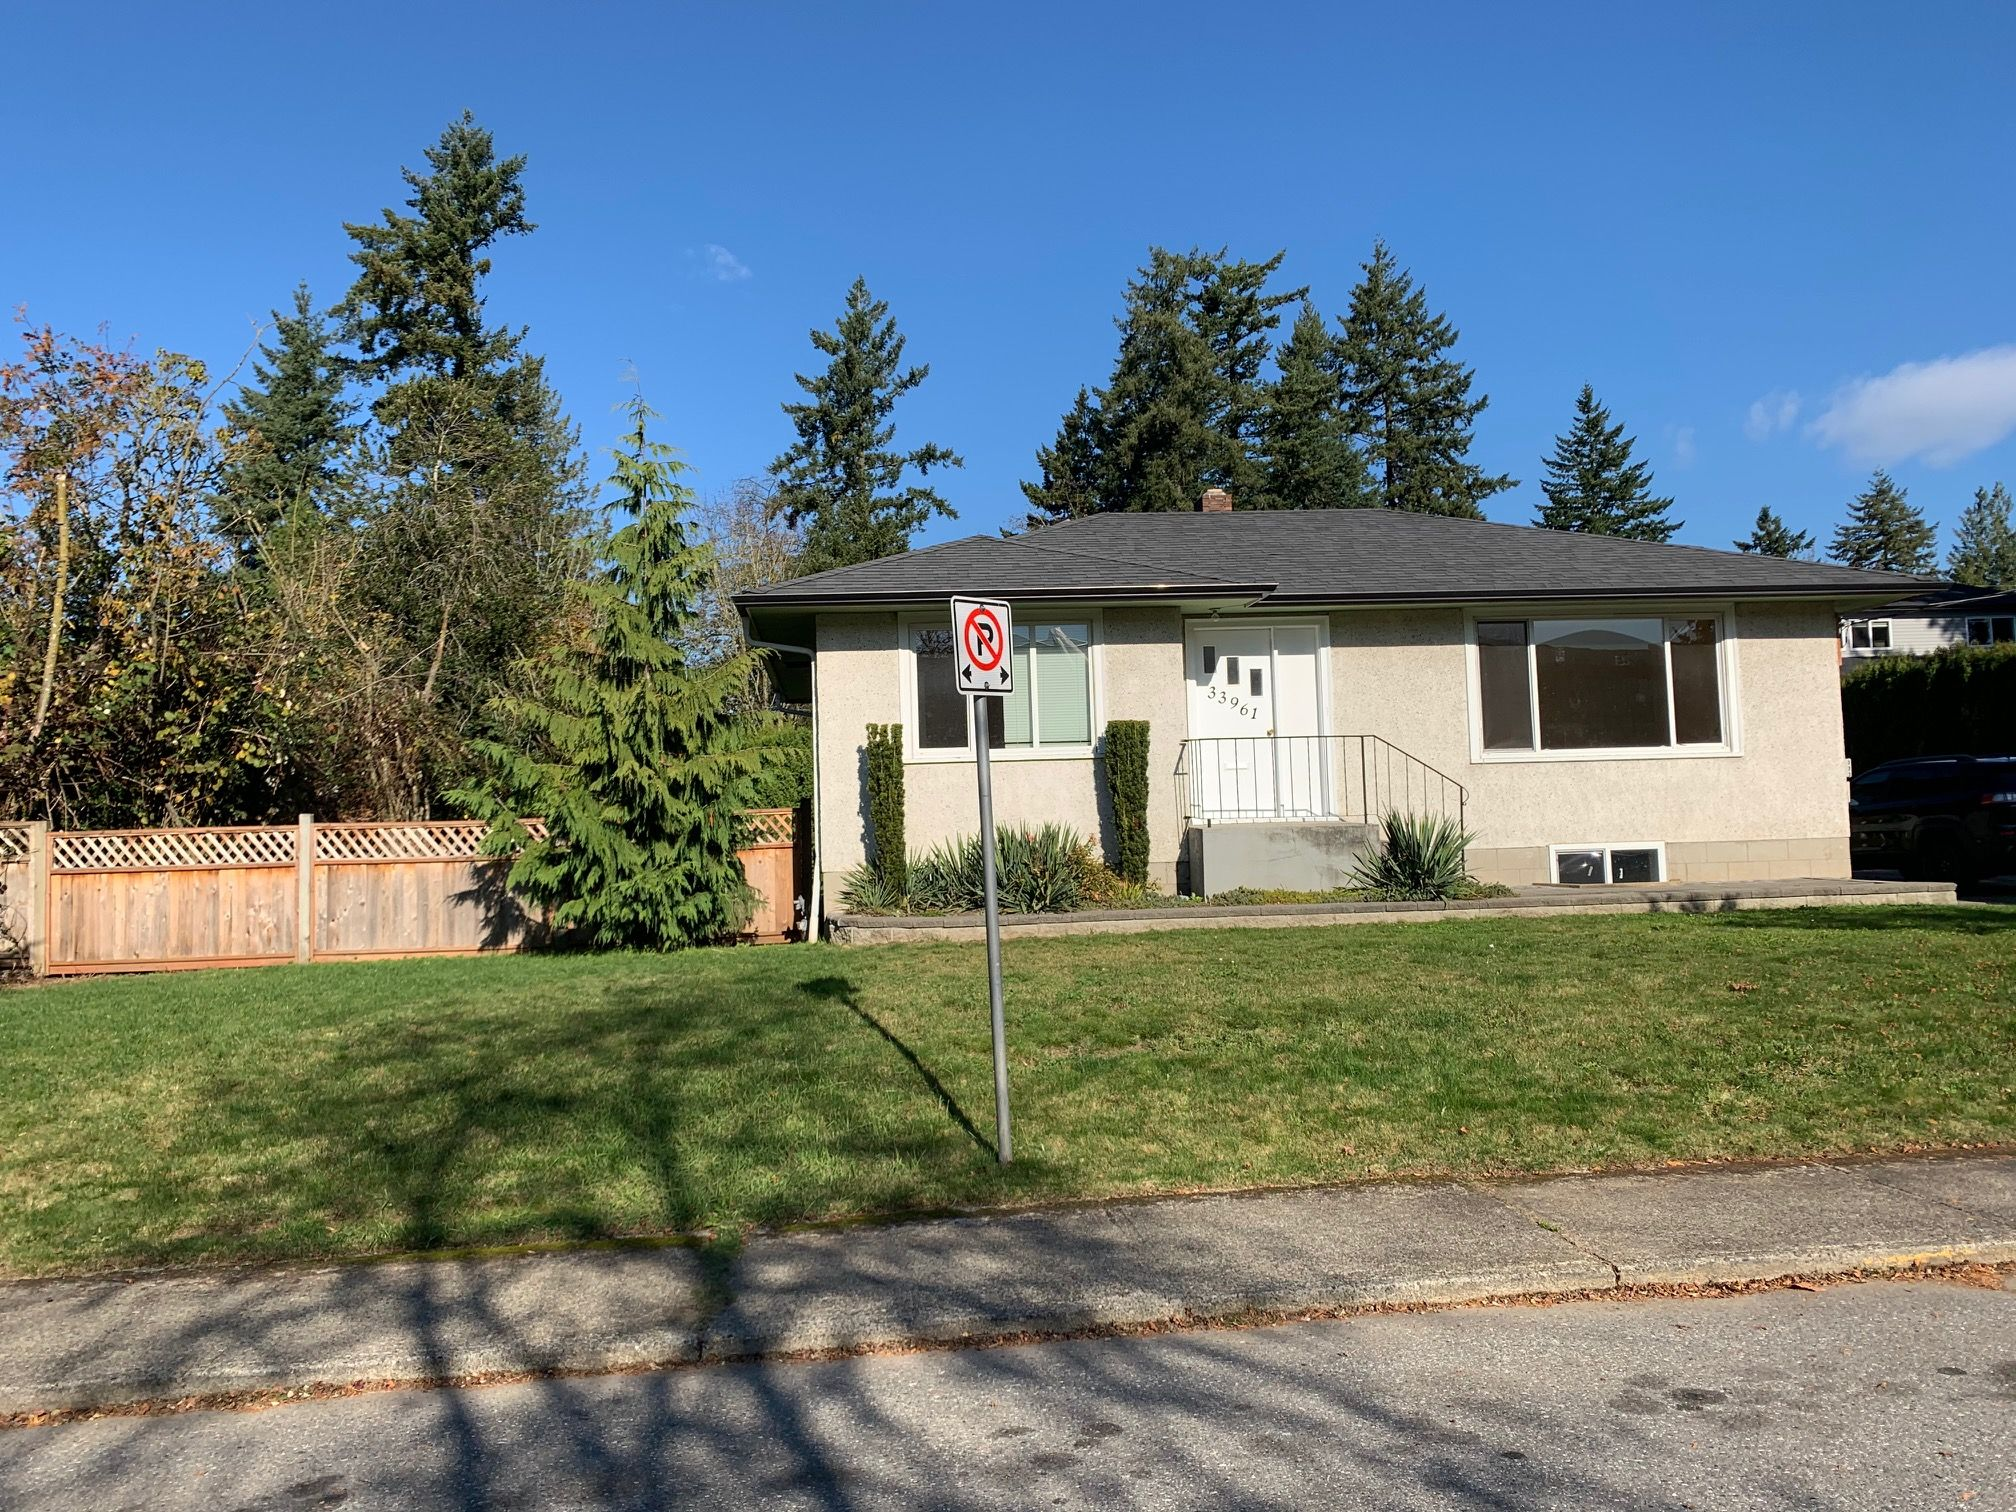 Main Photo: 33961 Essendene Ave. in Abbotsford: Central Abbotsford House for rent